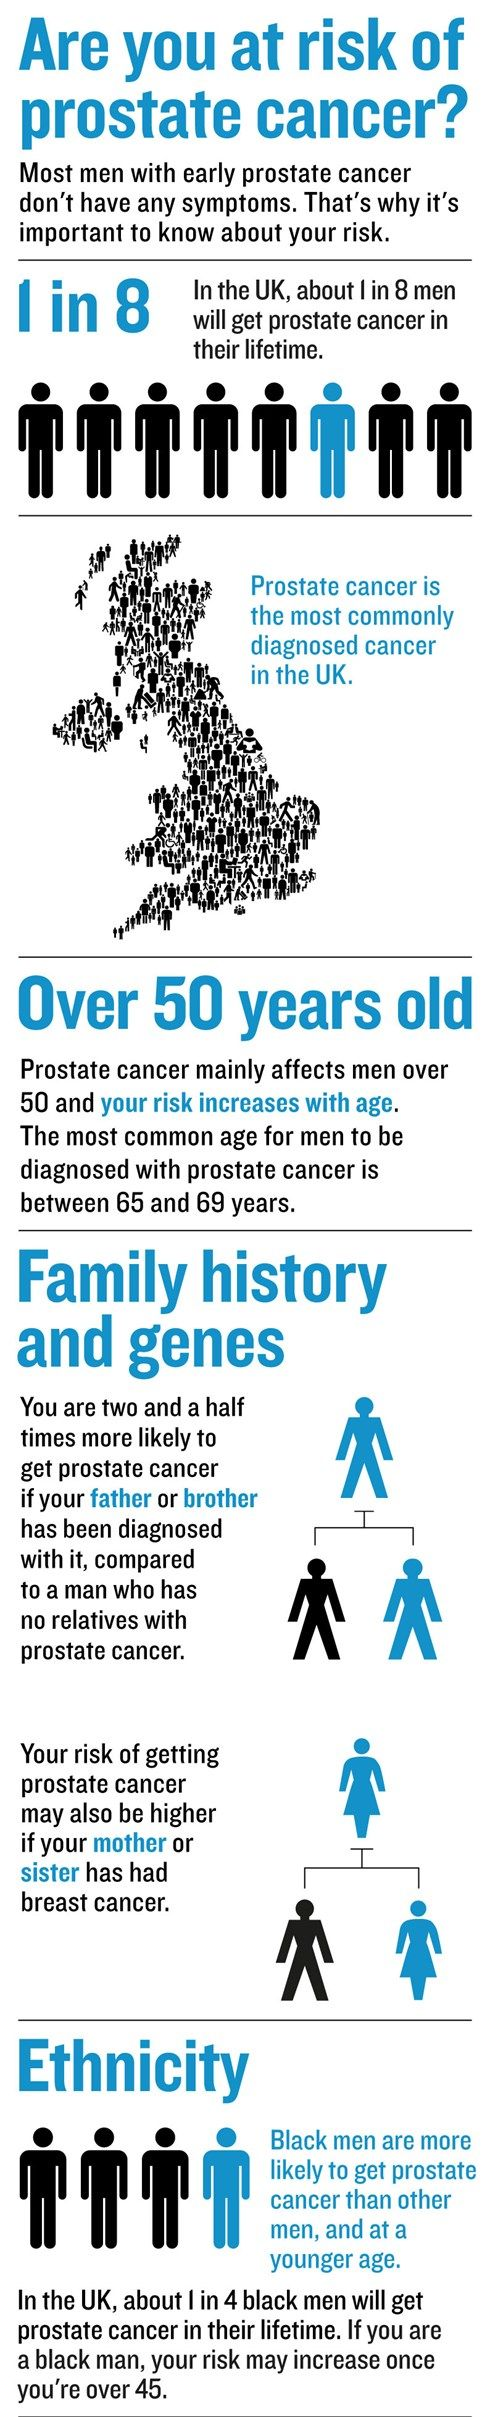 prostate cancer risk-infographic-web-2020-ifm